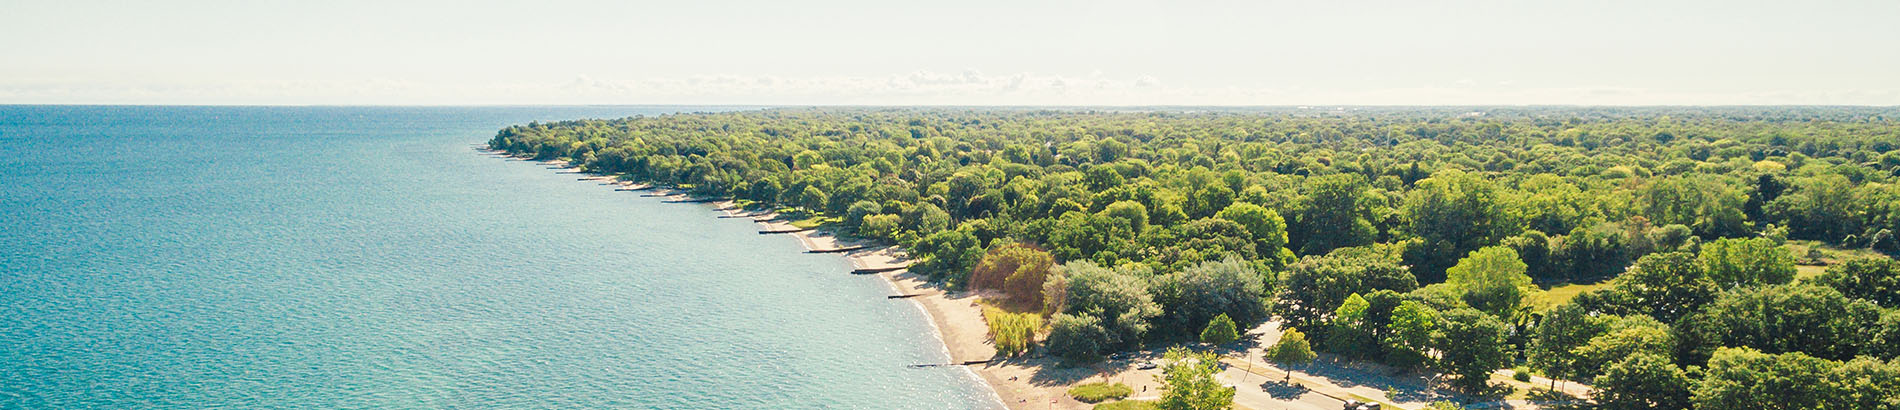 Aerial view of Lake Huron shoreline